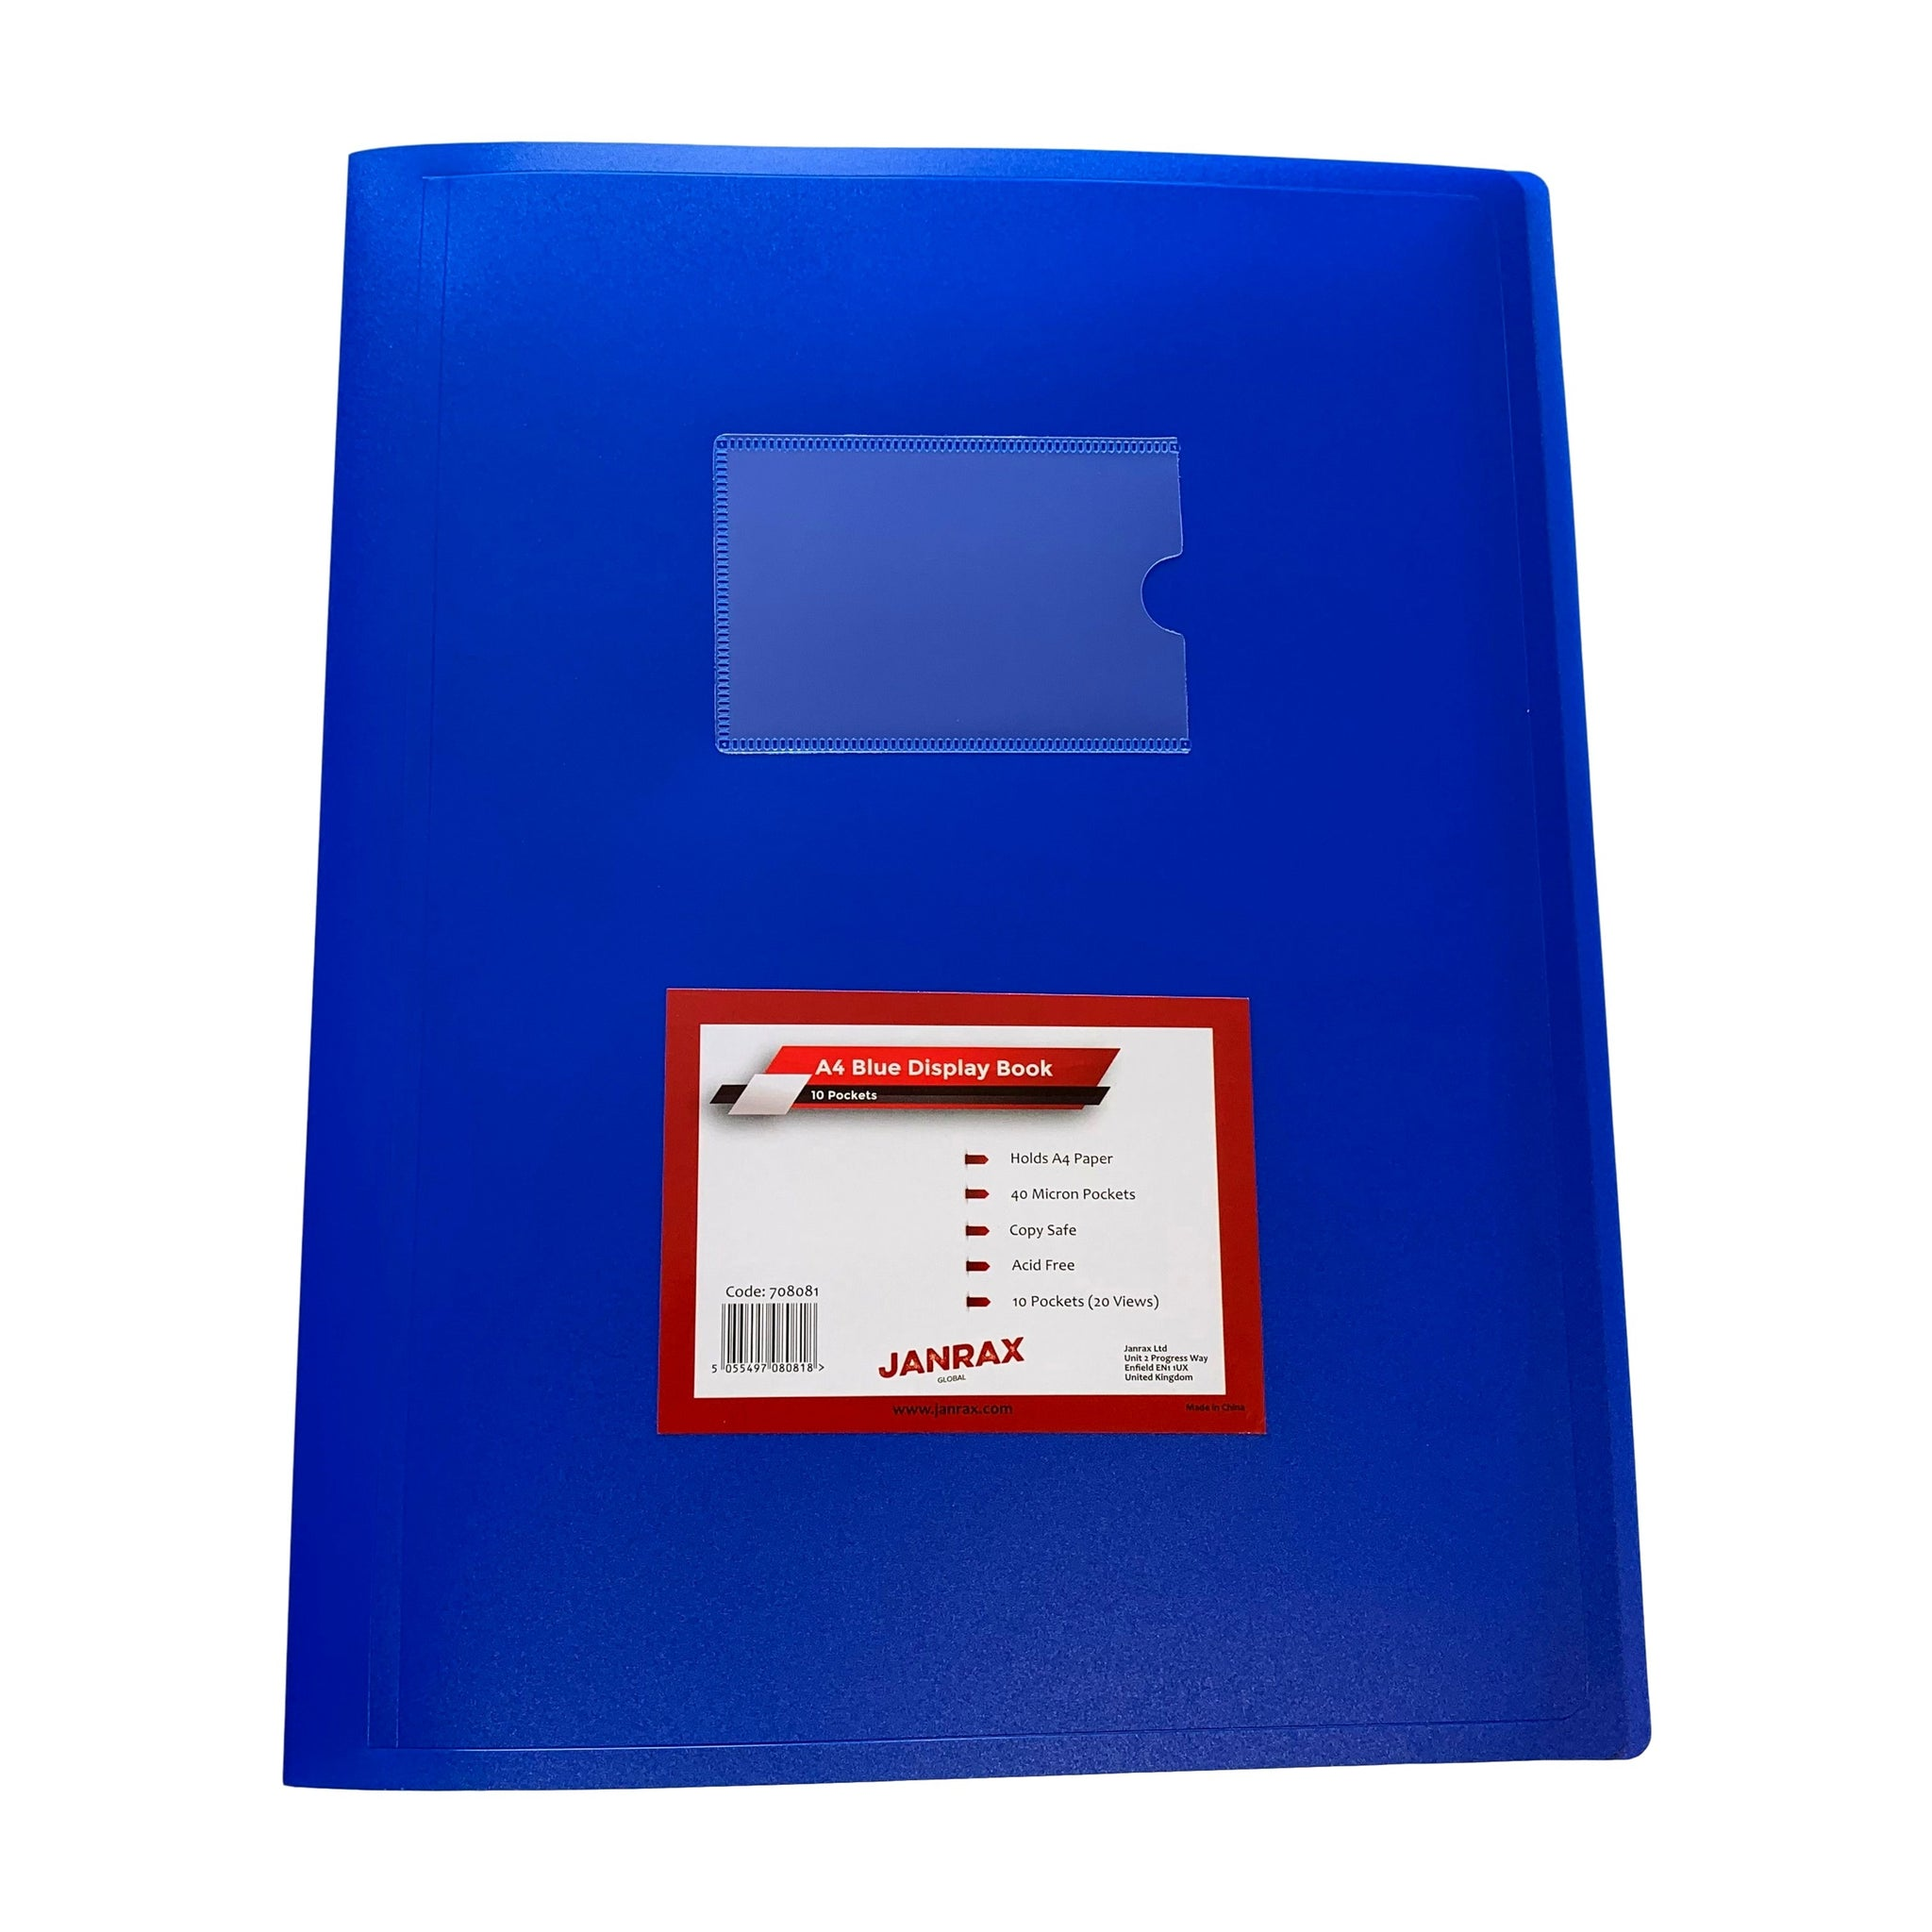 A4 Blue Flexible Cover 10 Pocket Display Book